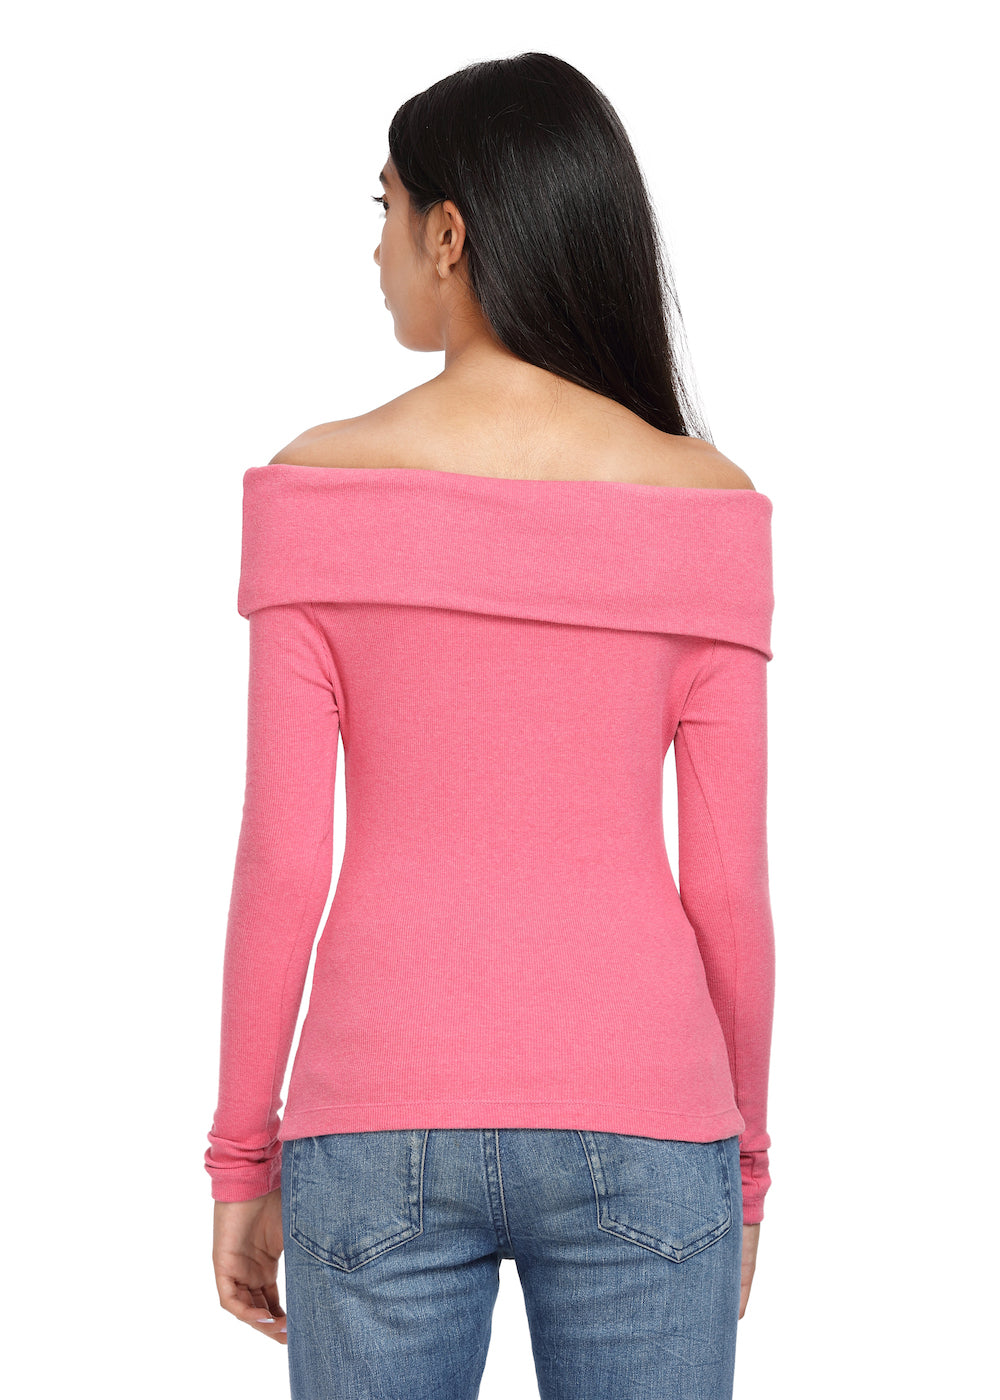 Fold-Over Top Ribbed Pink On/Off Shoulder with Detachable Straps - GENZEE